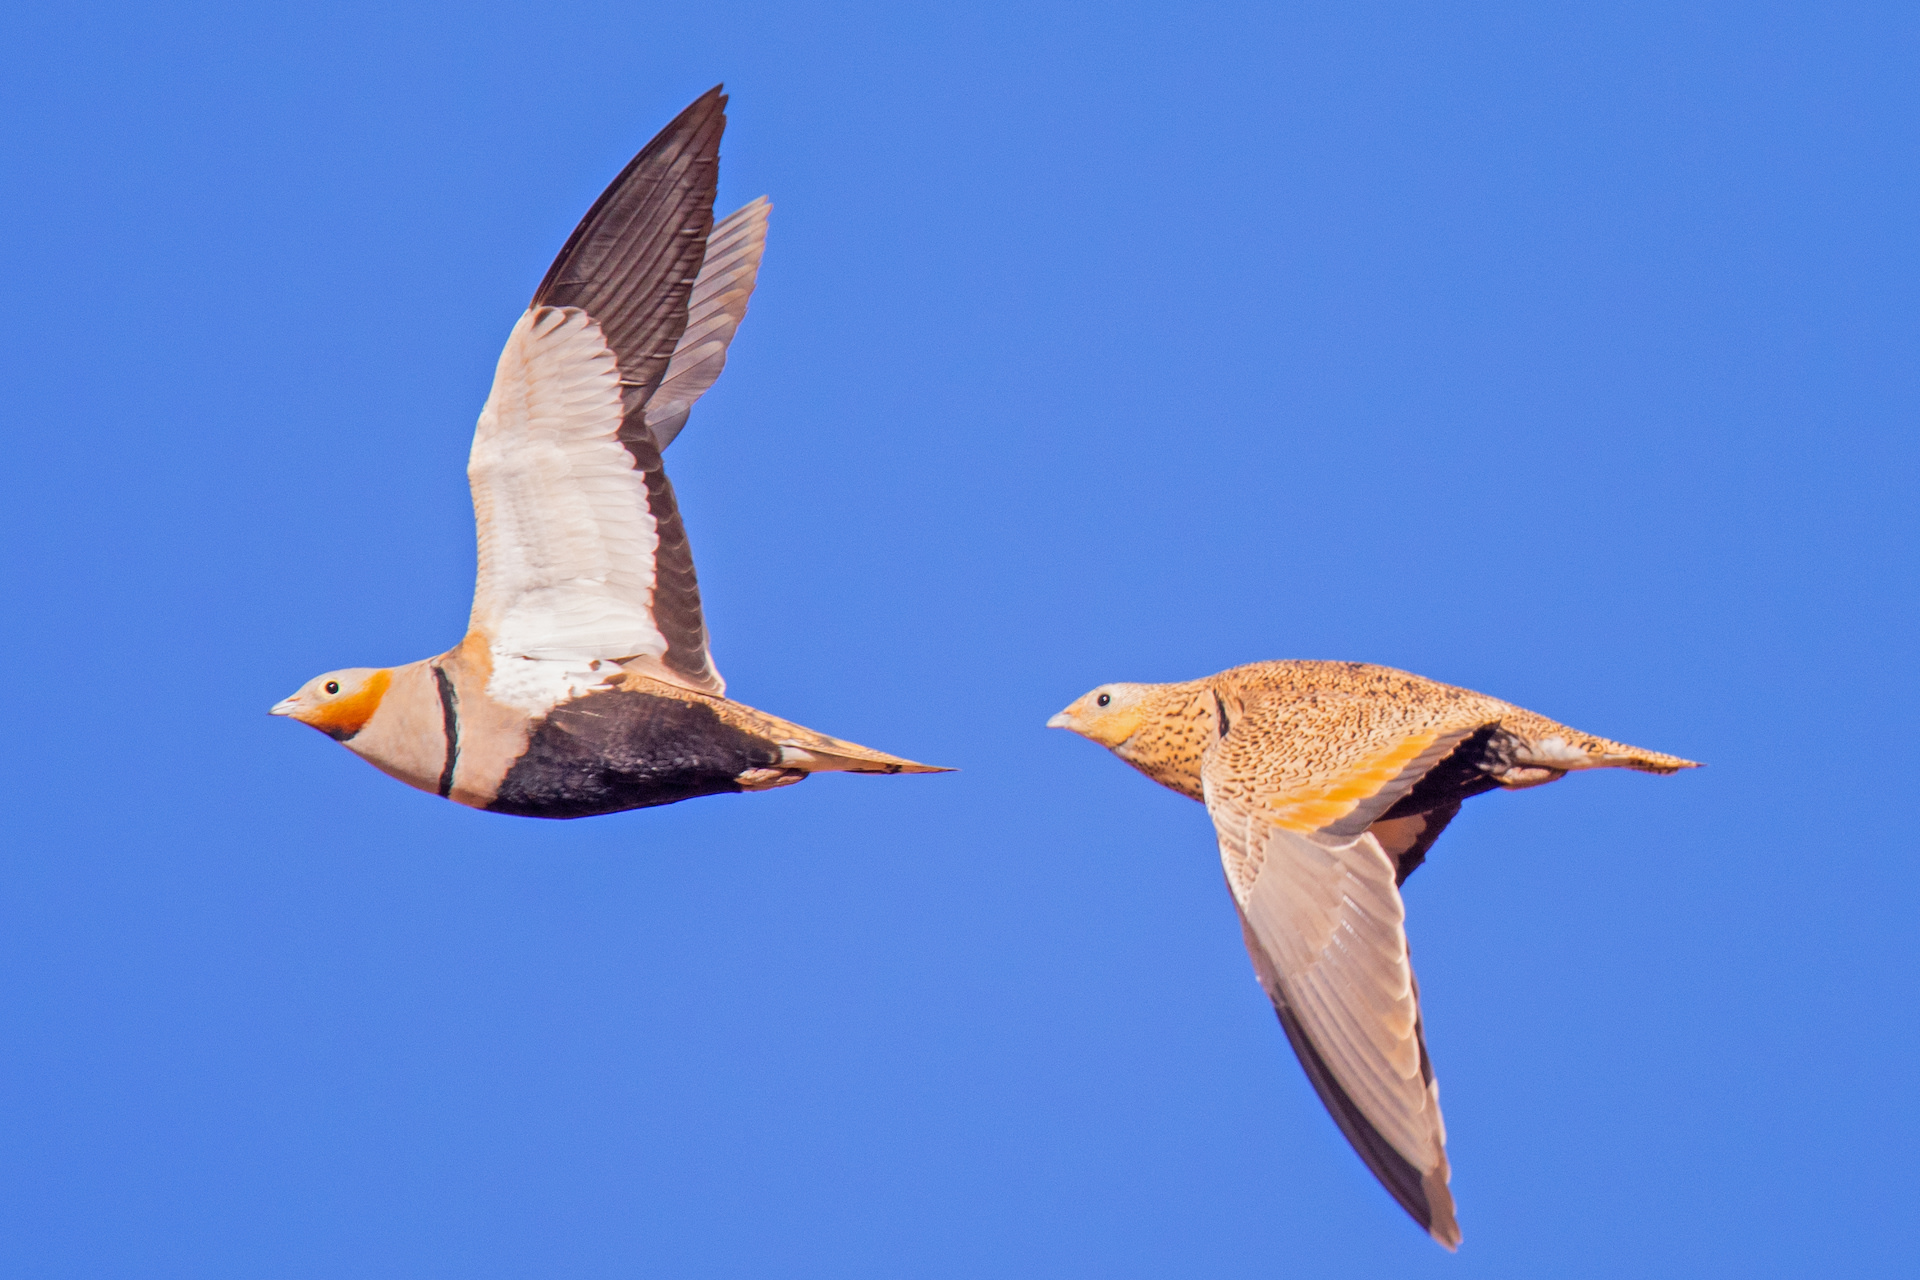 With a wingspan of around 70 cm, the black-bellied sandgrouse is a winter migrant to India. Unlike the female (right), the male (left) has a grey head and neck. Photo: Andreas Trepte - CC BY-SA 4.0